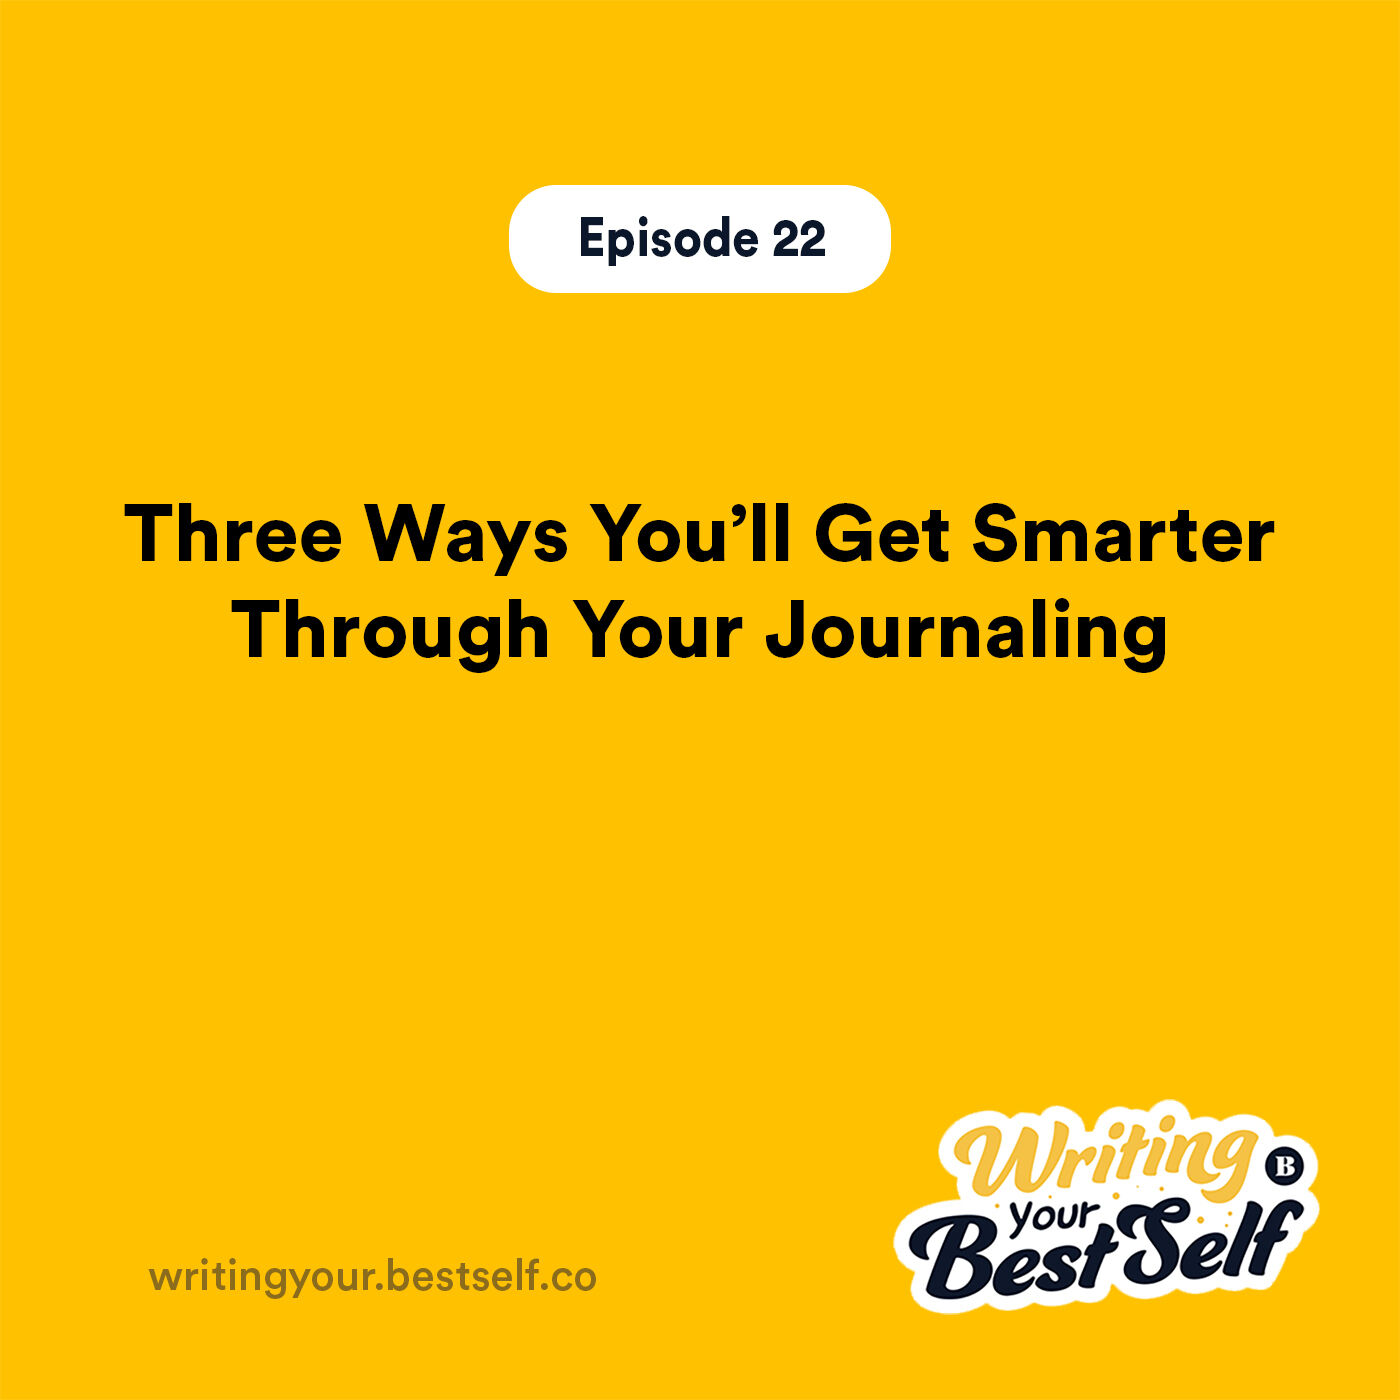 Three Ways You'll Get Smarter Through Your Journaling